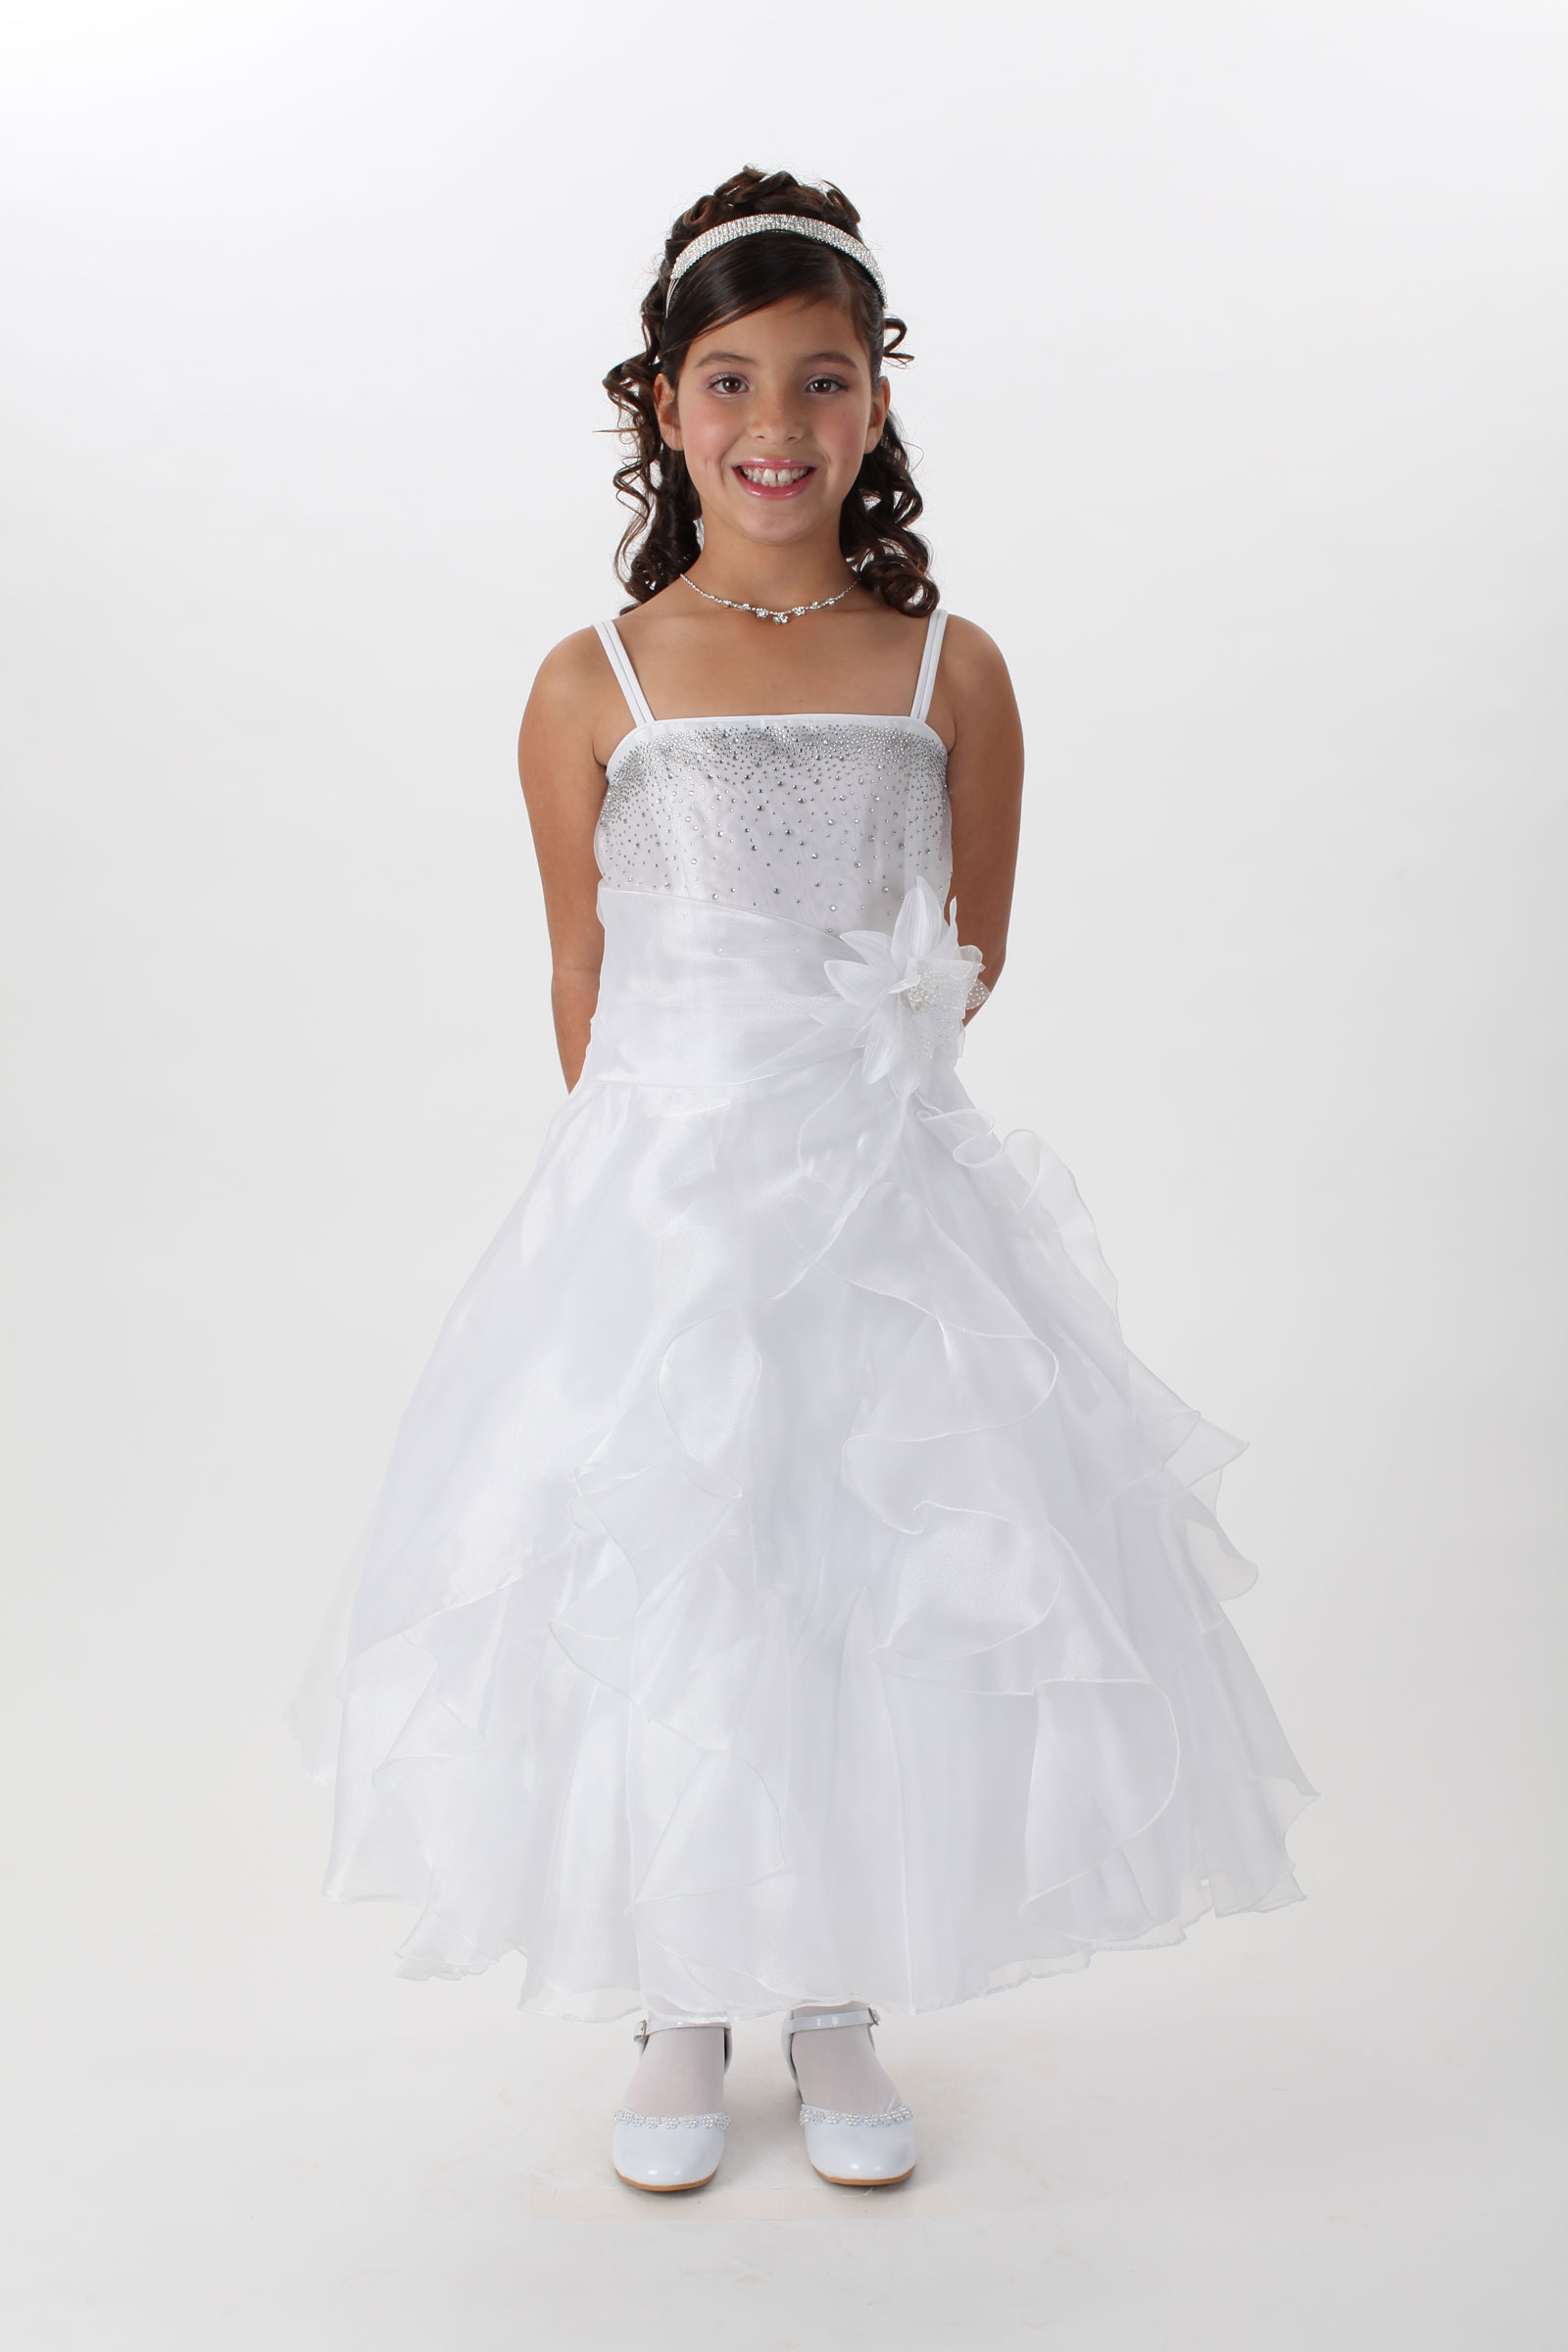 CC 1101 Girls Dress Style 1101 Organza and Beaded Satin